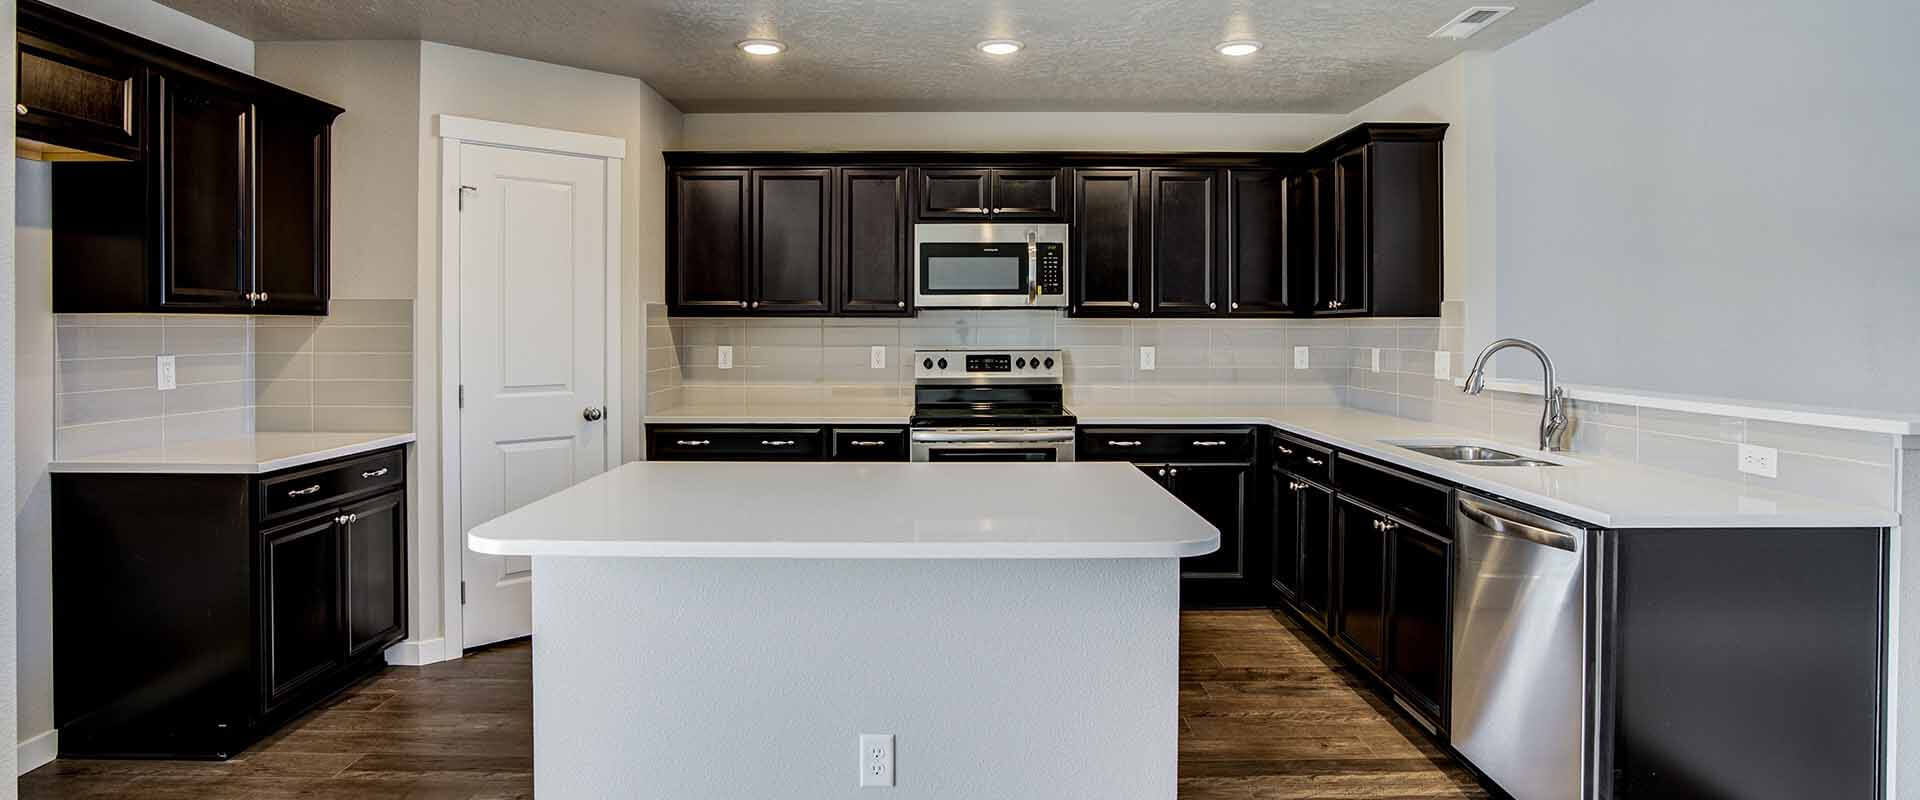 Trinity_Hubble_Homes_New_Homes_Boise_0003_Eagle Stream Trinity Traditional - Kitchen - 15109 N Bonelli Ave-3.jpg